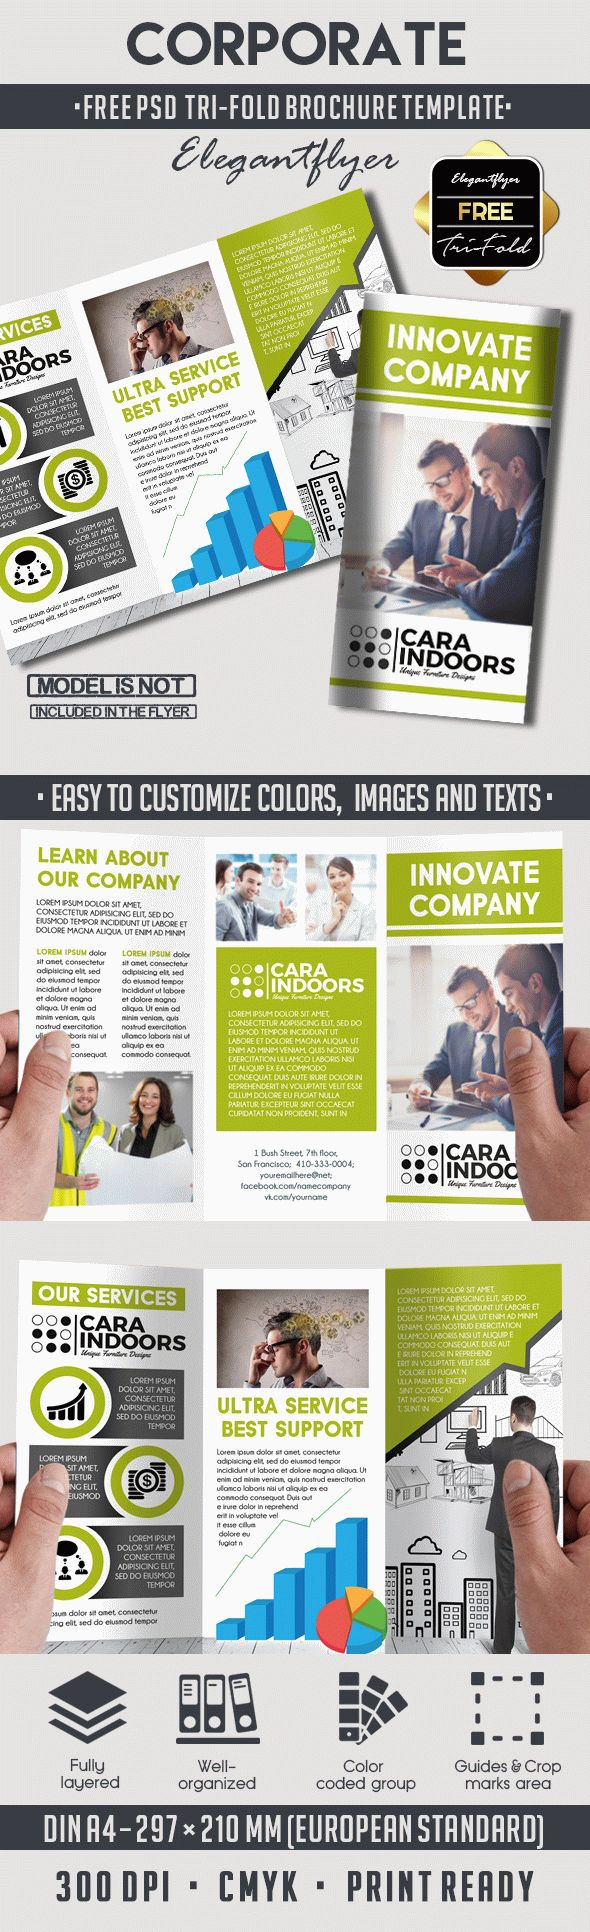 Corporate brochure design psd by elegantflyer for Tri fold brochure psd template